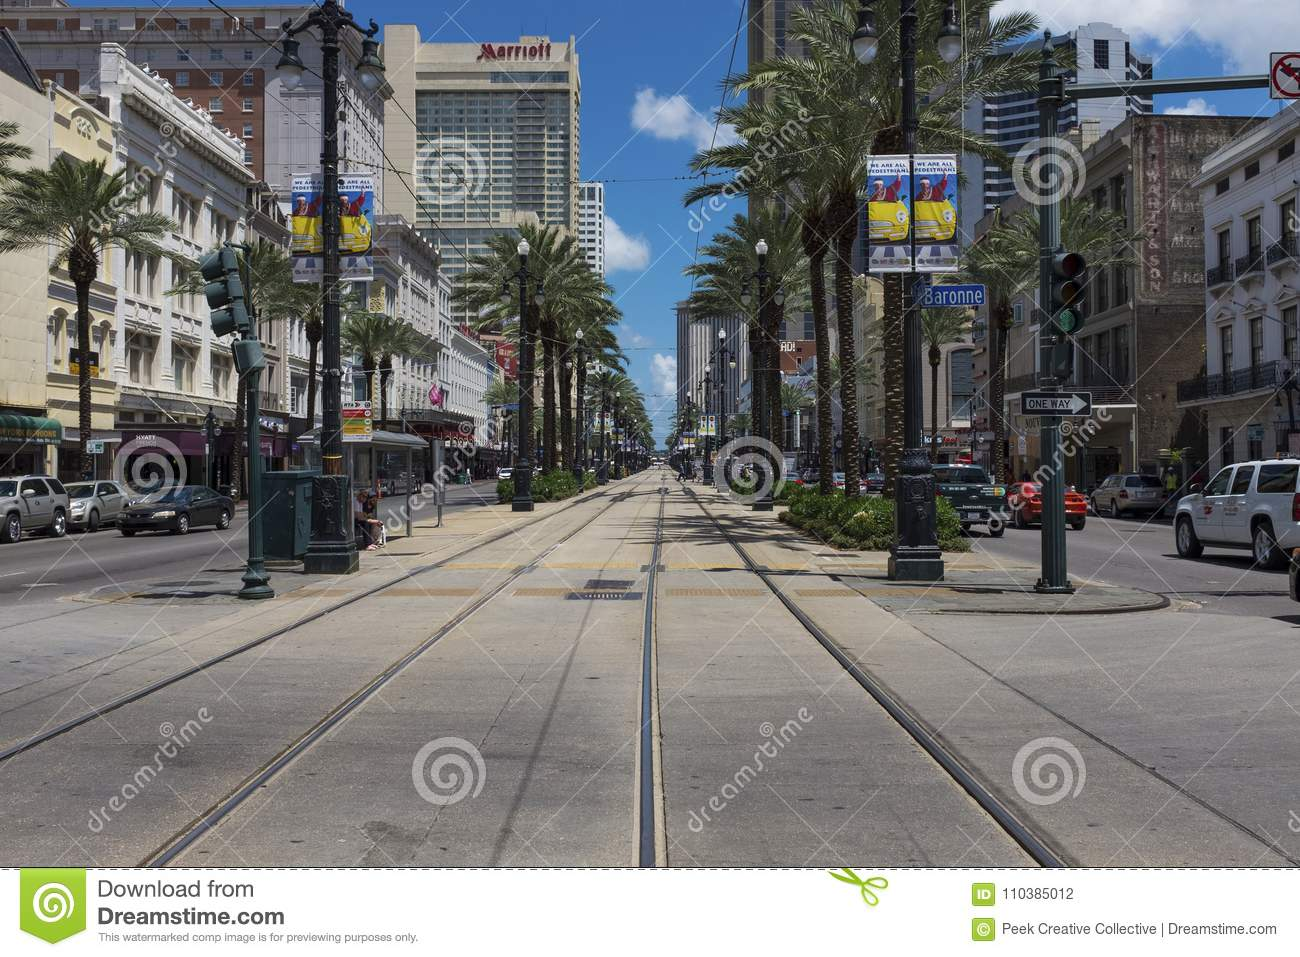 Street scene at Canal Street in the downtown of the city of New Orleans, Louisiana